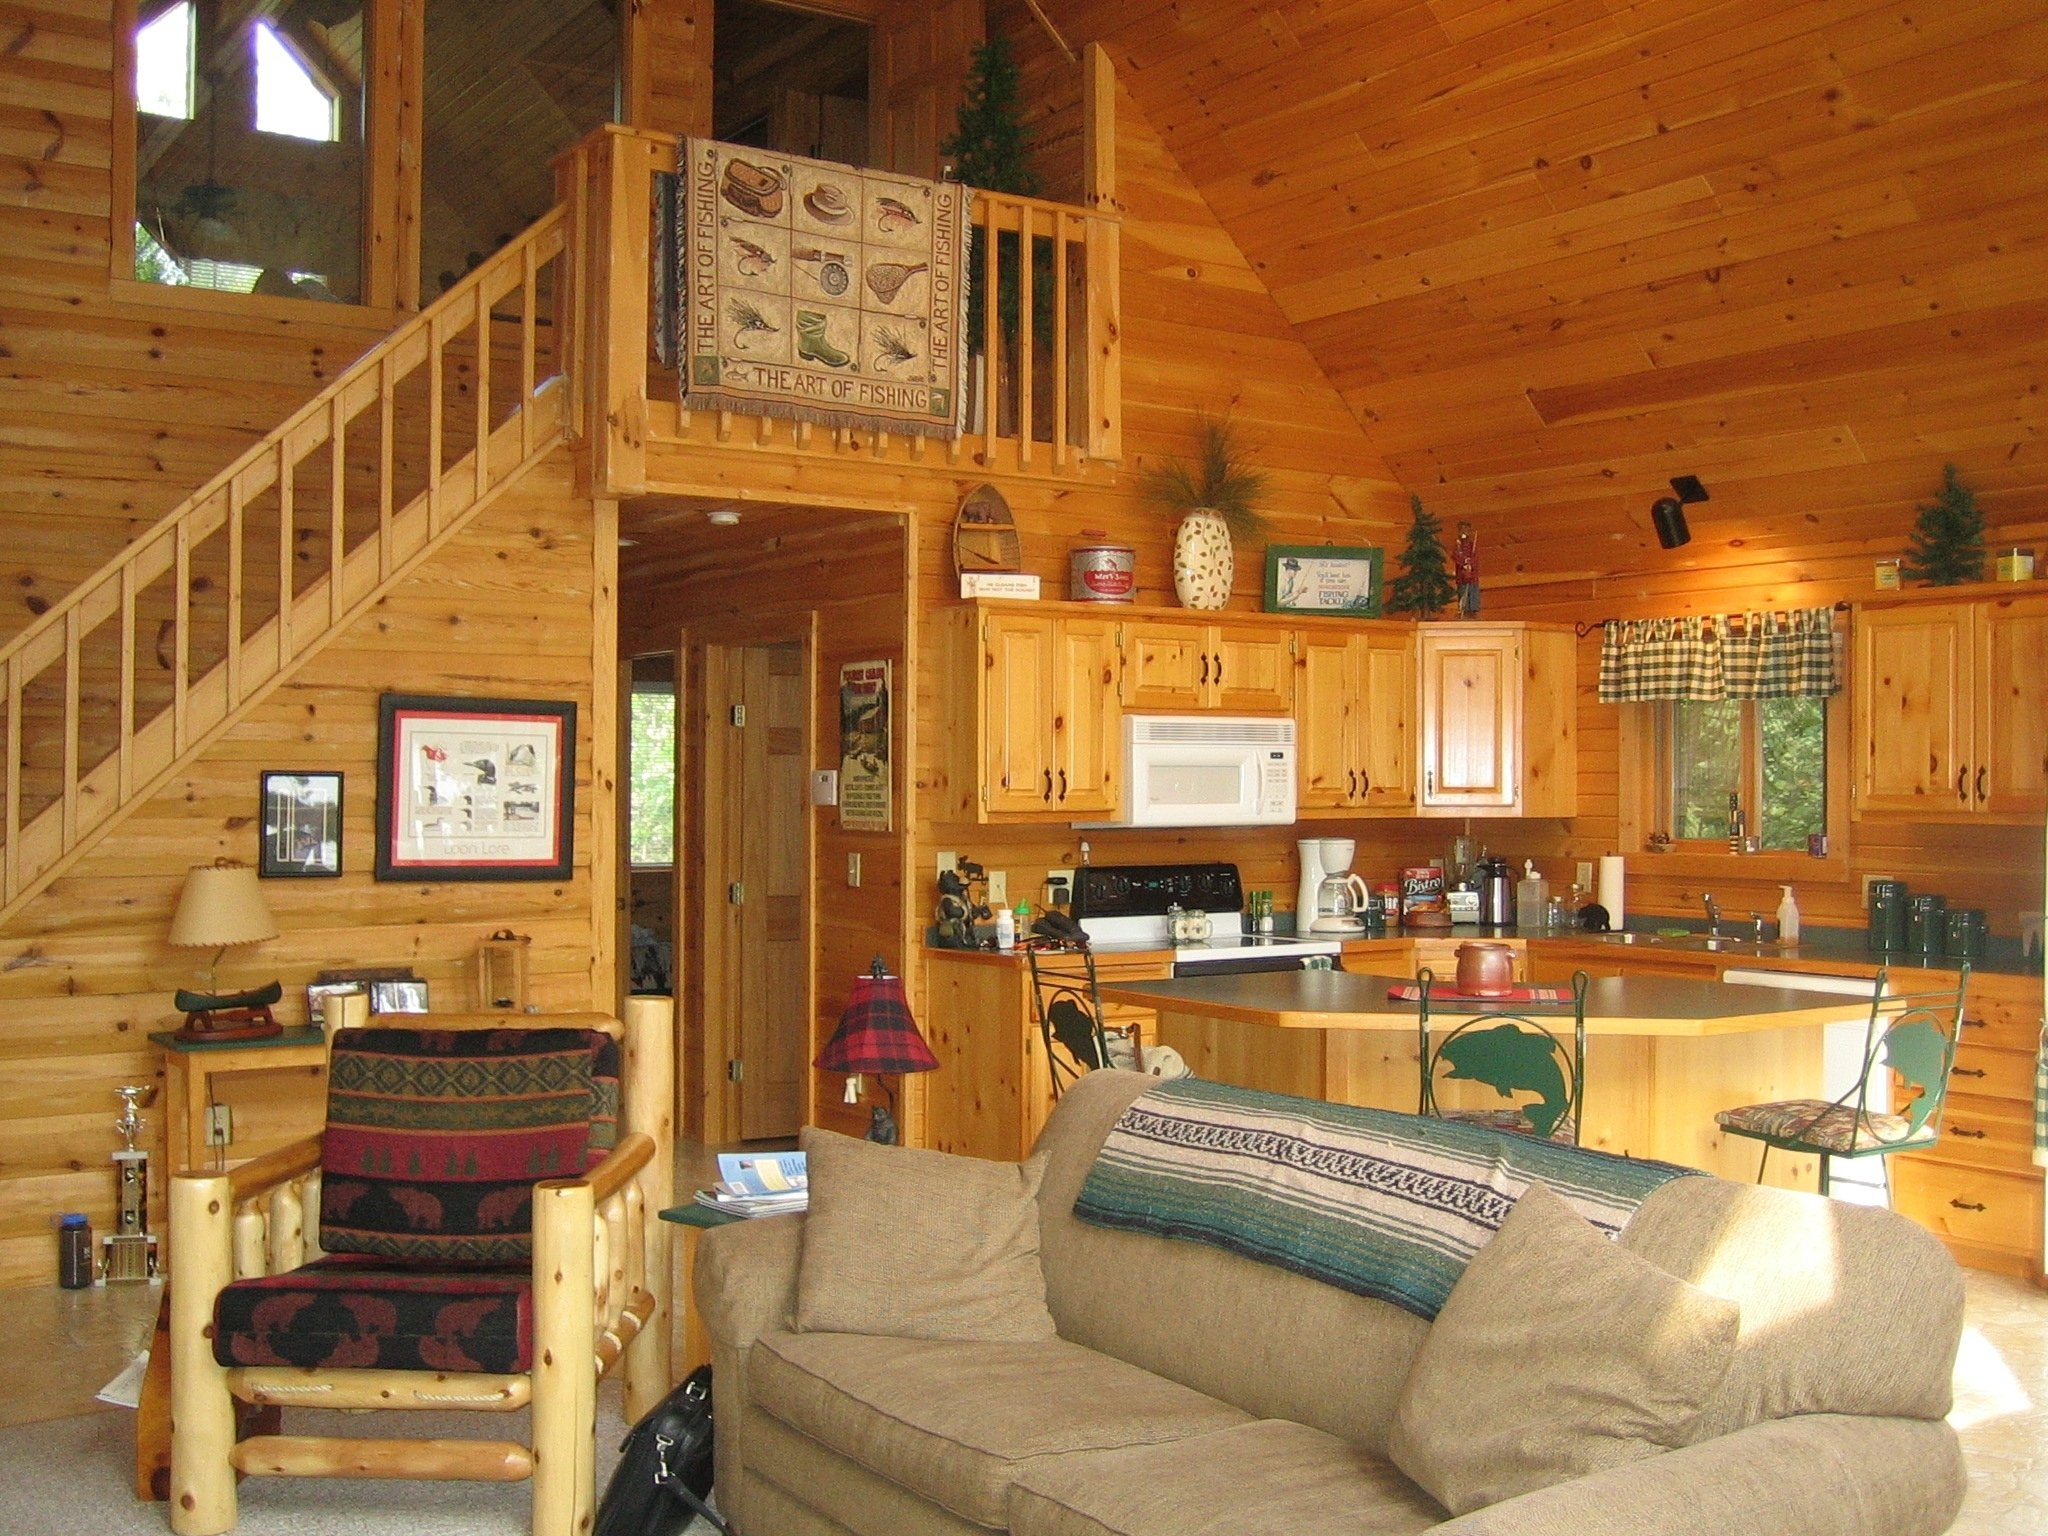 rustic cabin interior design ideas also - dma homes | #814